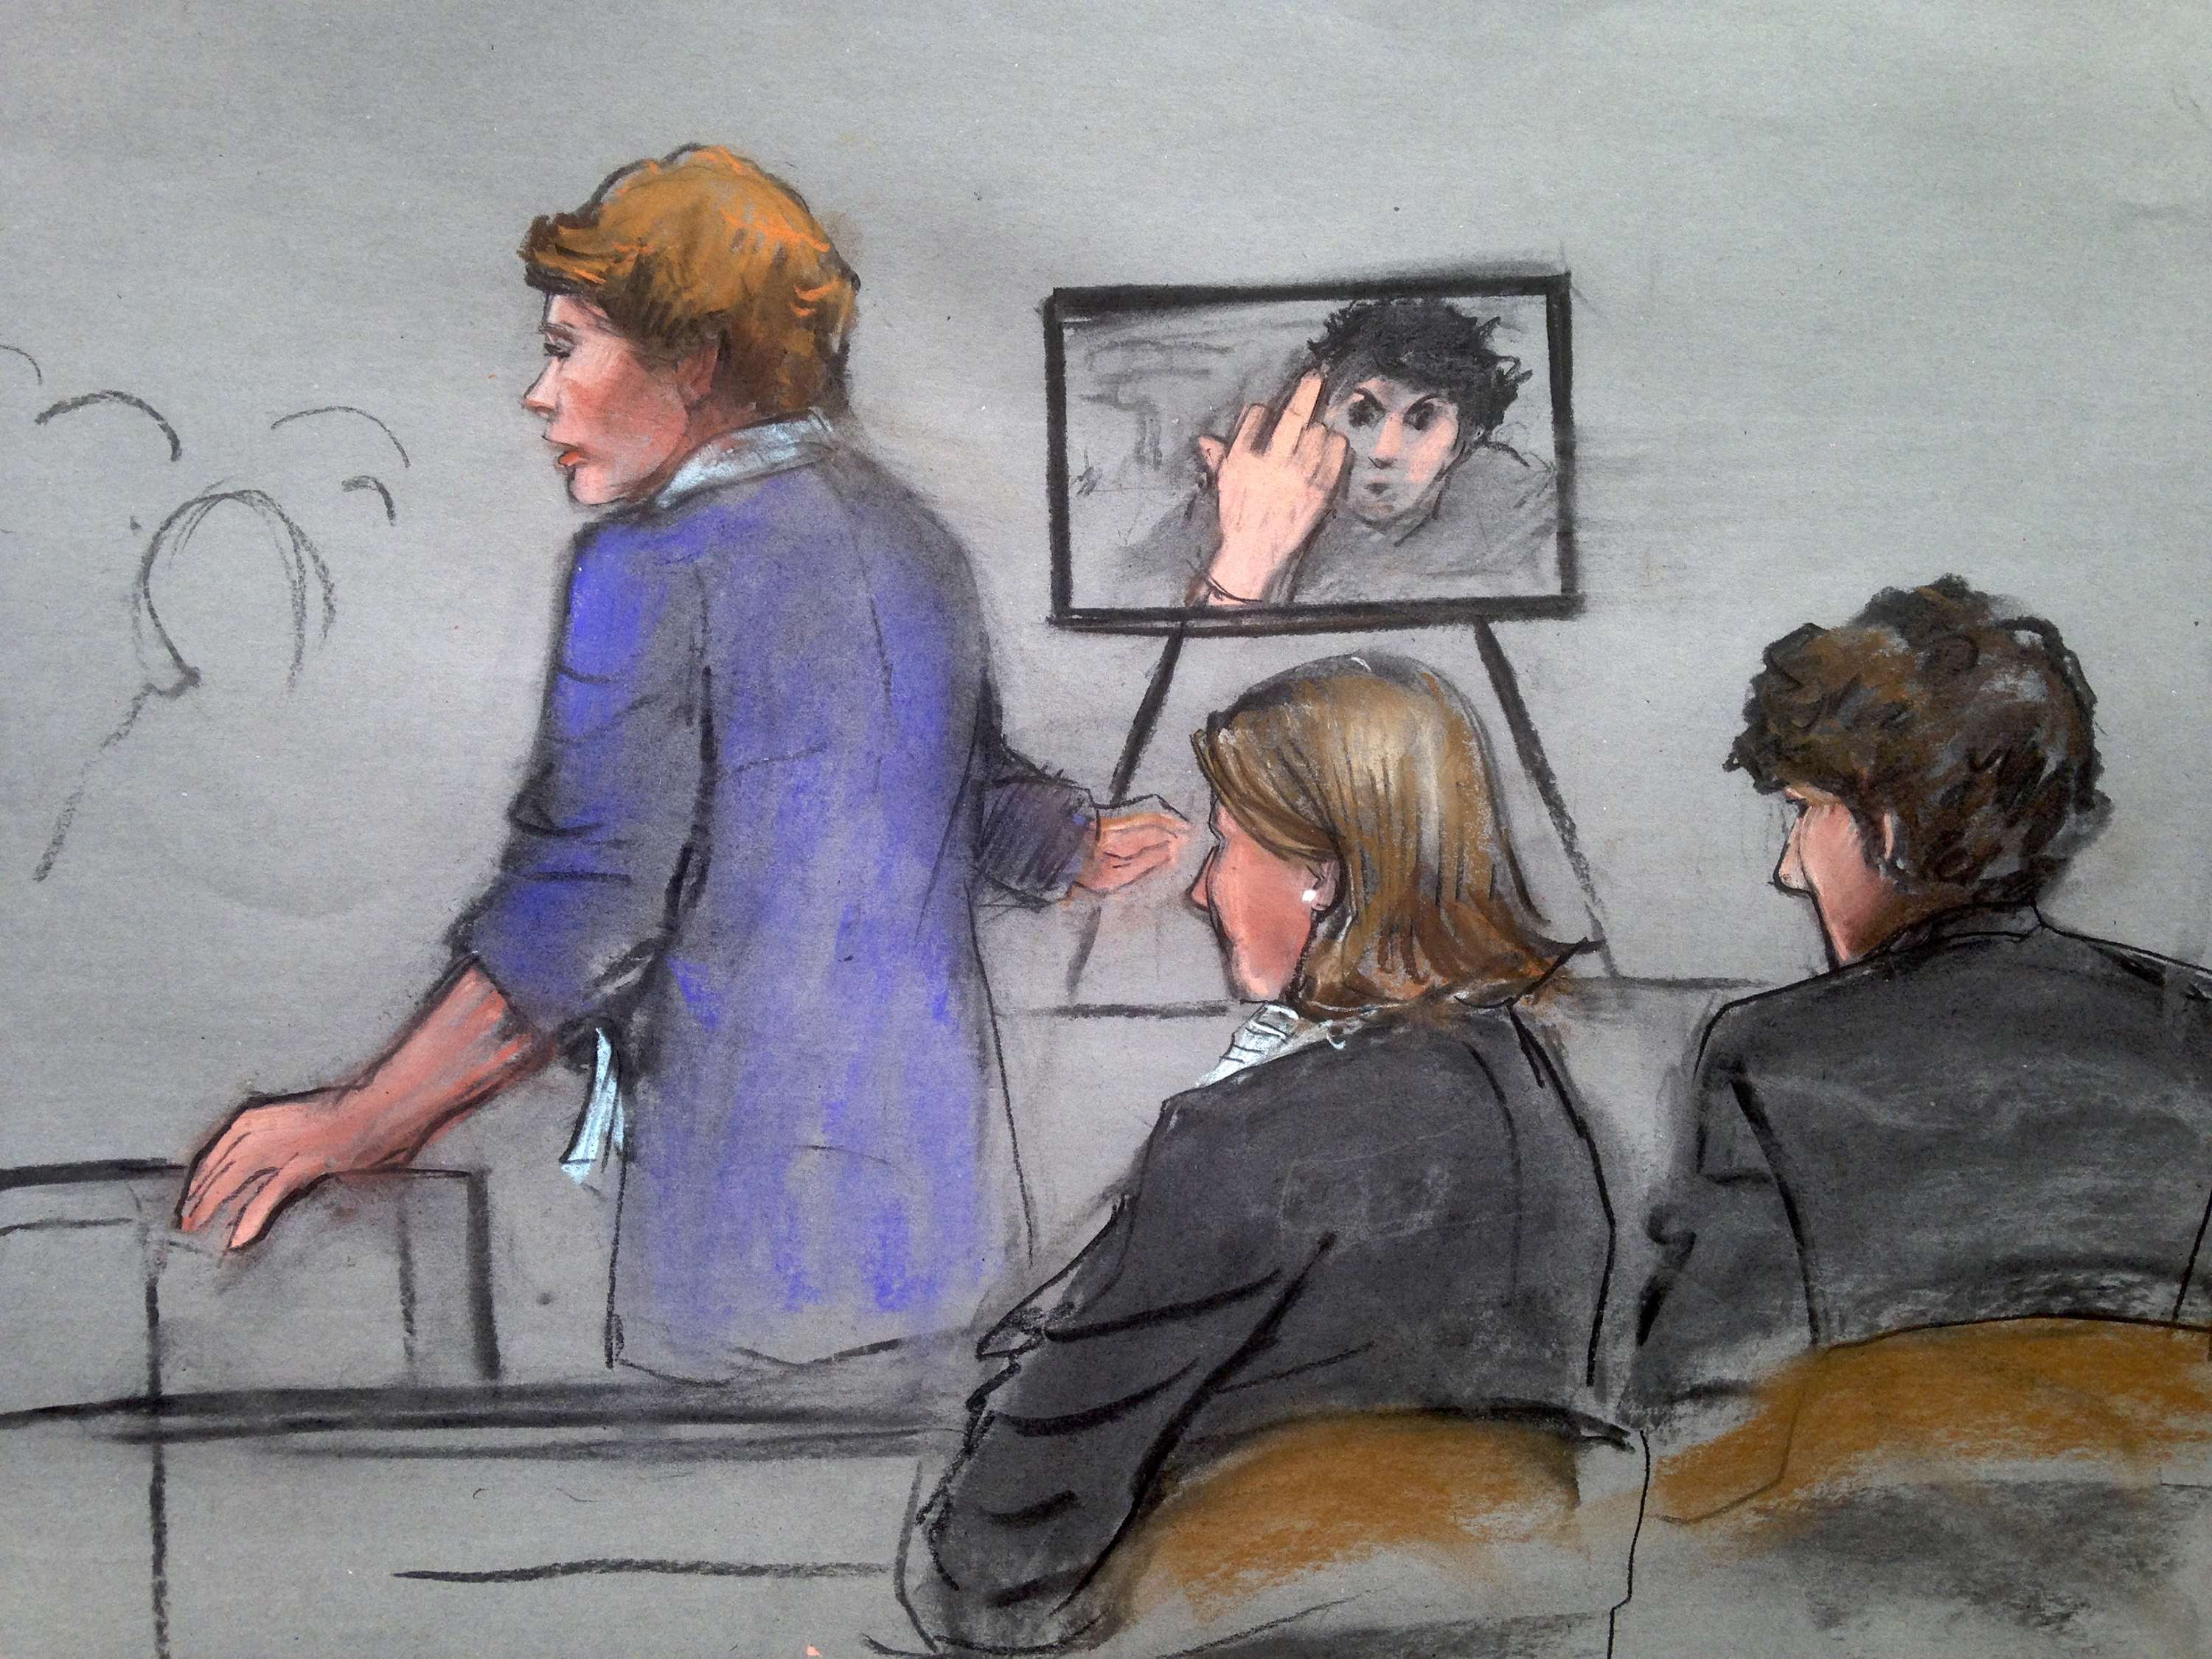 Photo of Tsarnaev giving middle finger in cell shown at trial